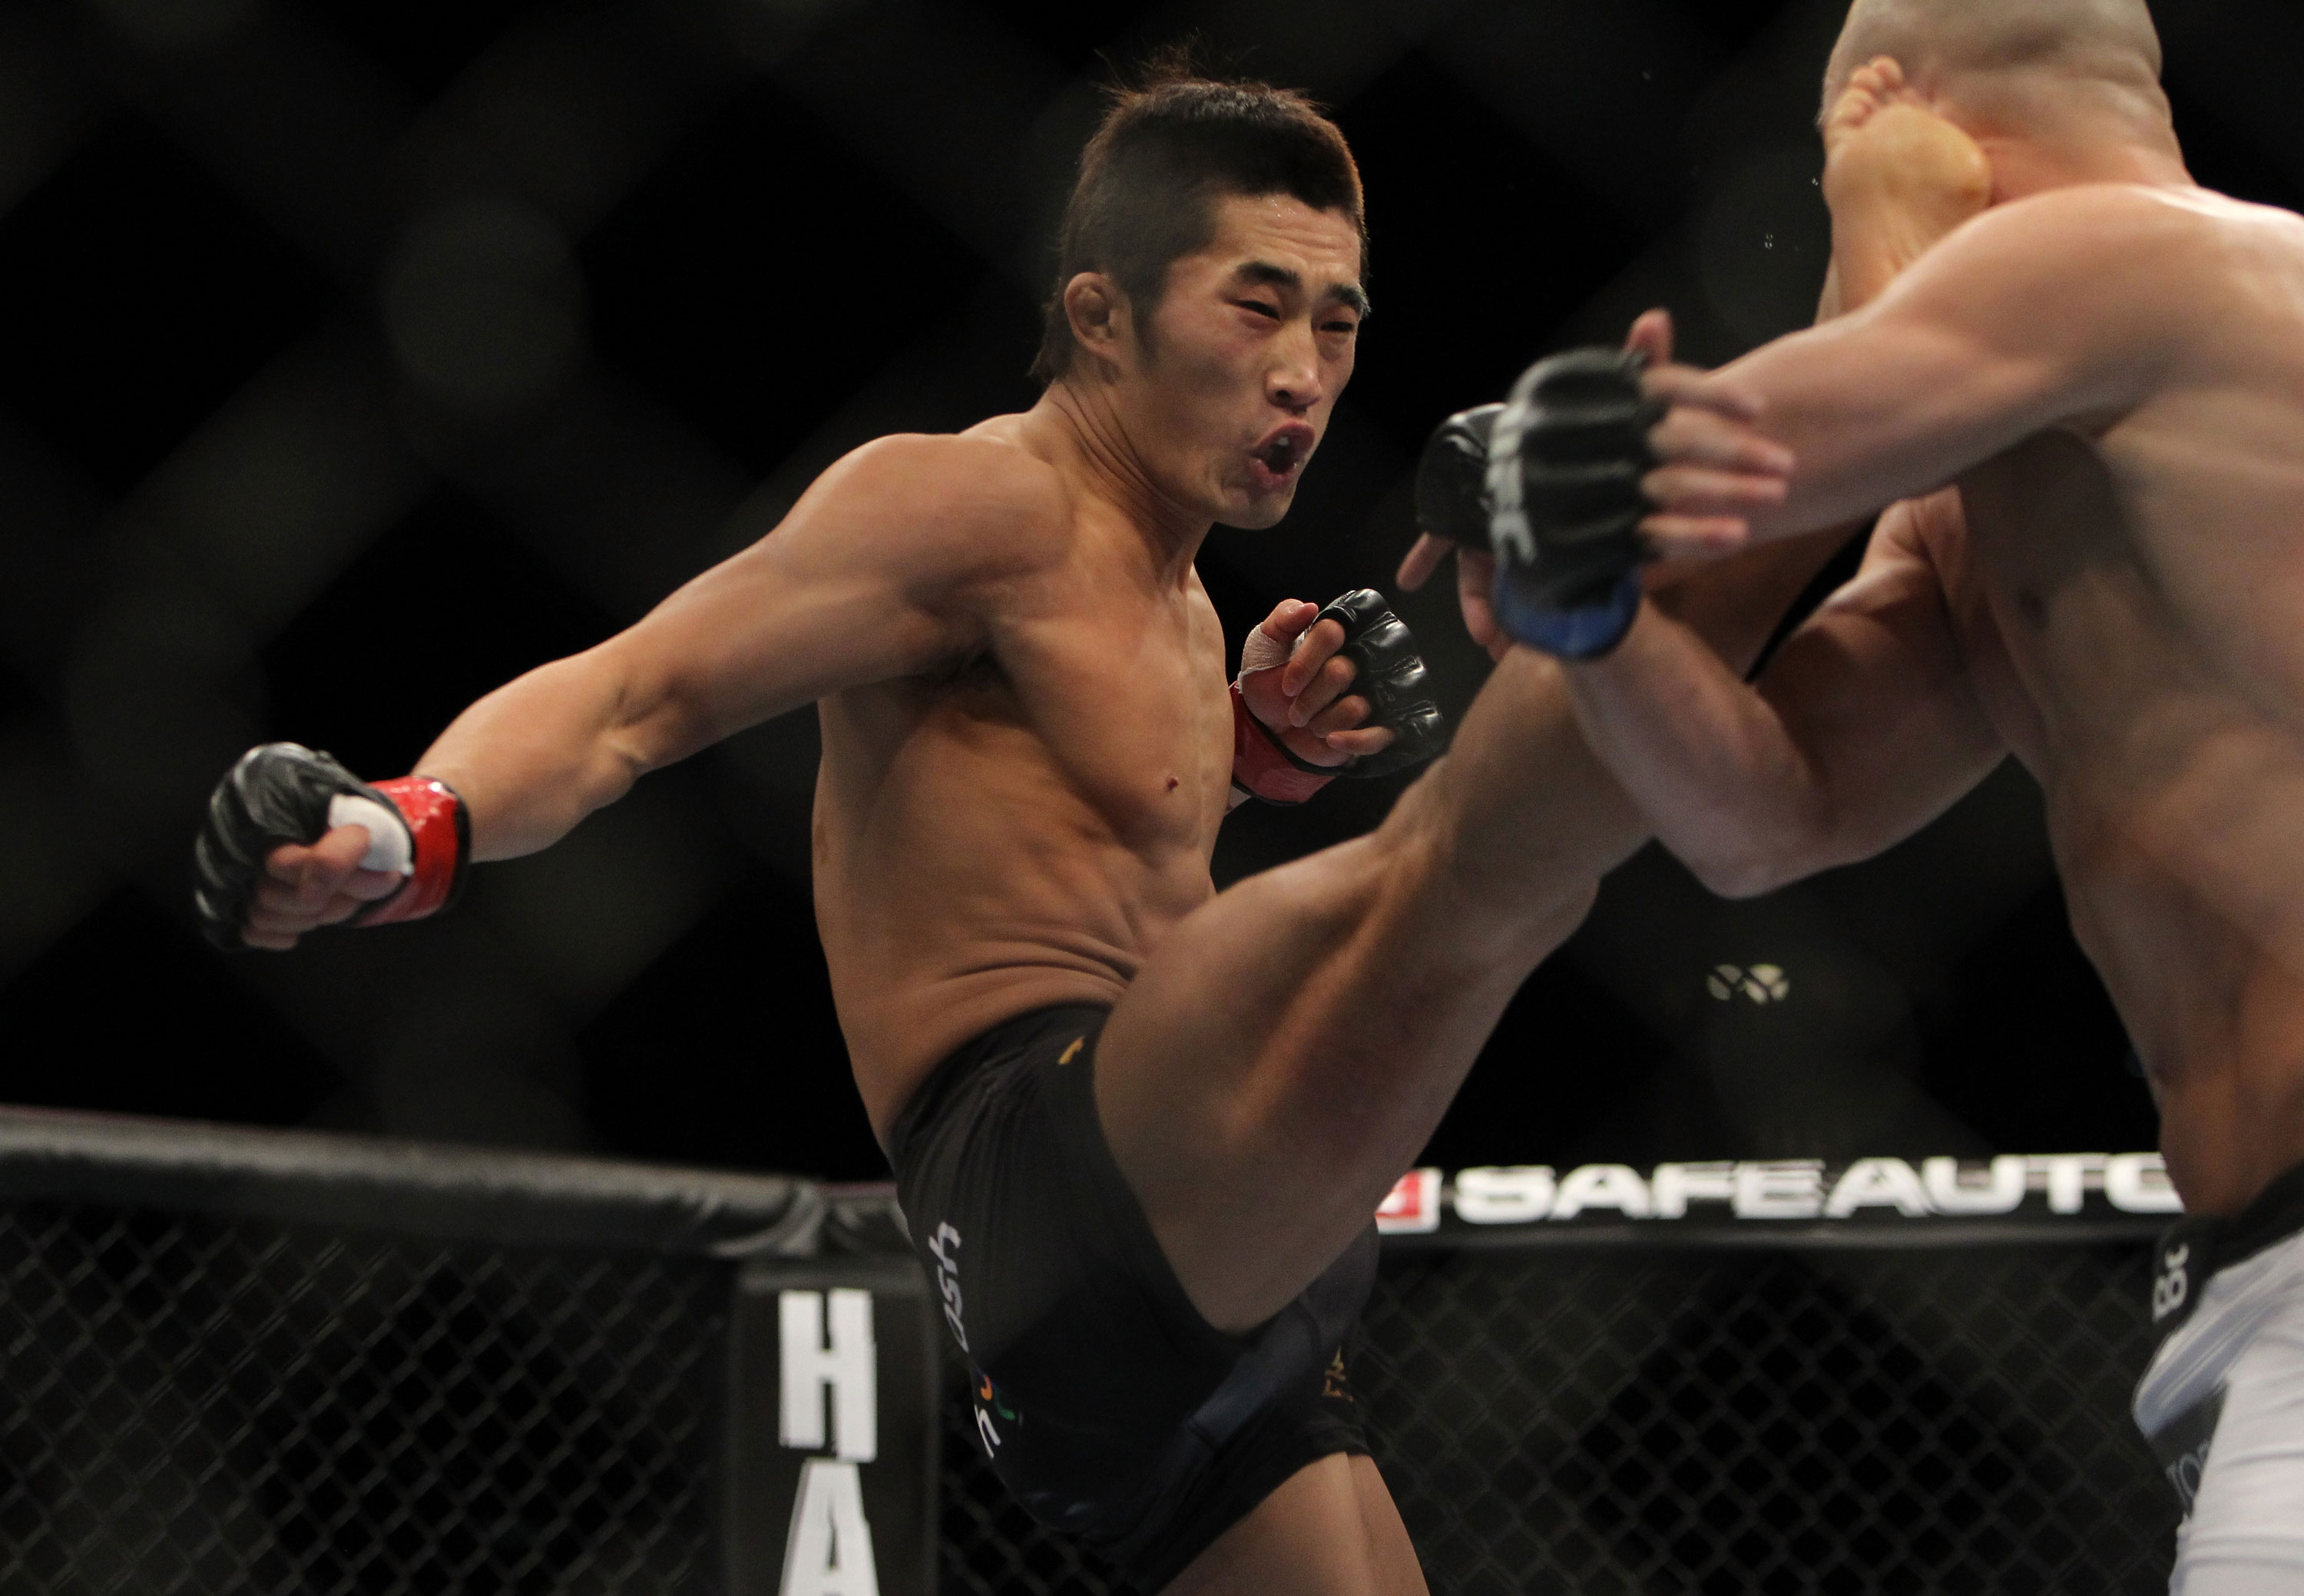 LAS VEGAS, NV - DECEMBER 30:  Dong Hyun Kim (black shorts) kicks Sean Pierson during the UFC 141 event at the MGM Grand Garden Arena on December 30, 2011 in Las Vegas, Nevada.  (Photo by Josh Hedges/Zuffa LLC/Zuffa LLC via Getty Images) *** Local Caption *** Dong Hyun Kim; Sean Pierson